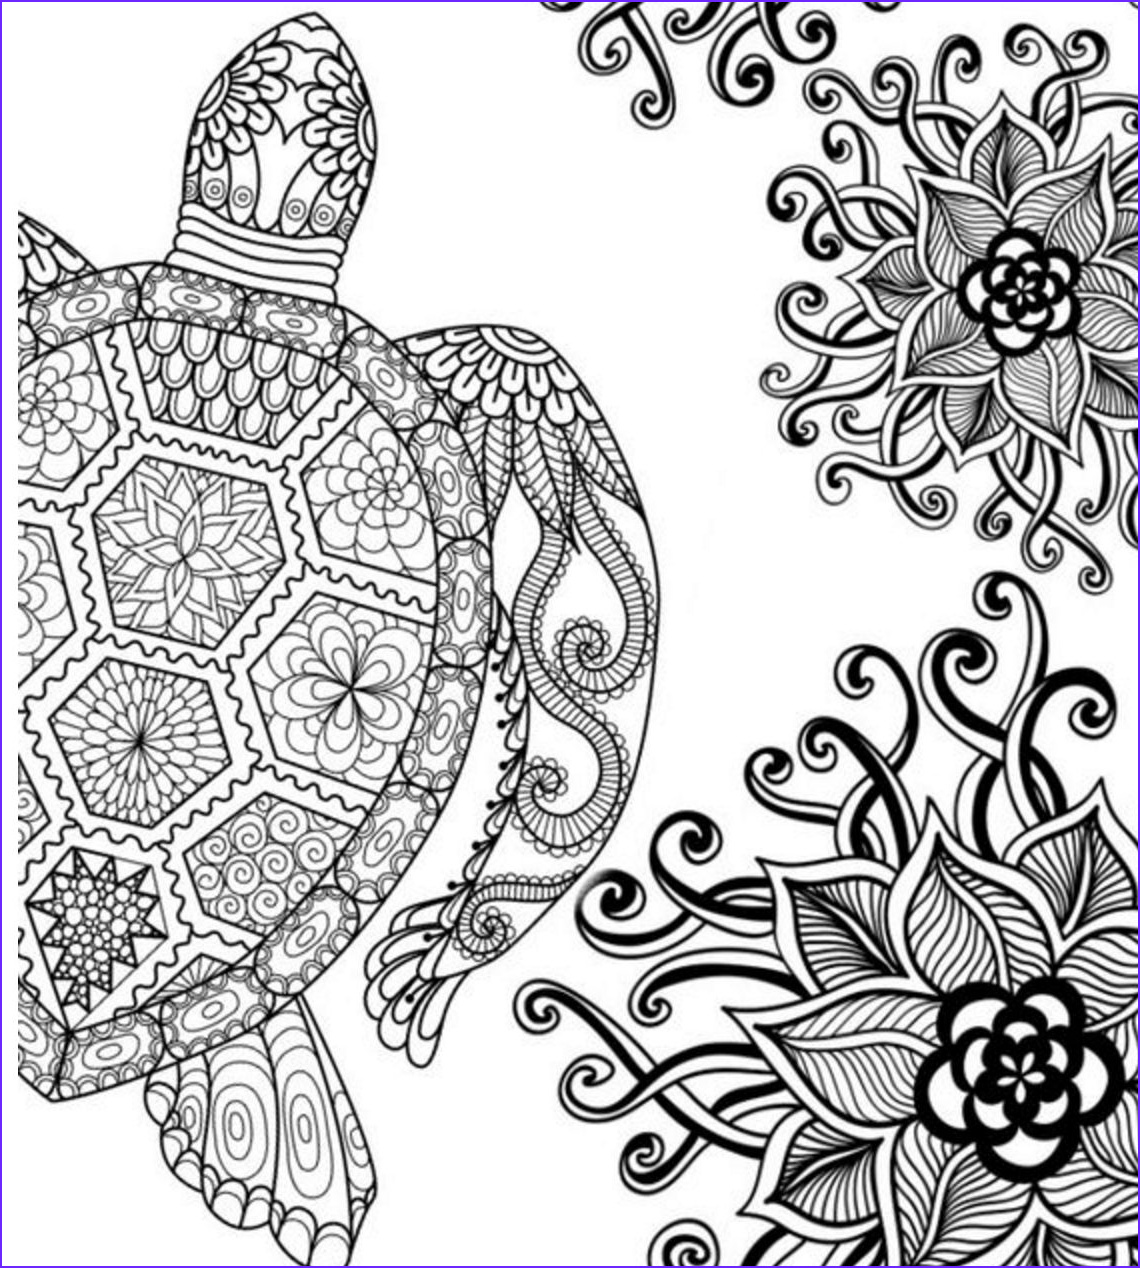 Coloring Images for Adults Beautiful Photos 20 Free Adult Colouring Pages the organised Housewife